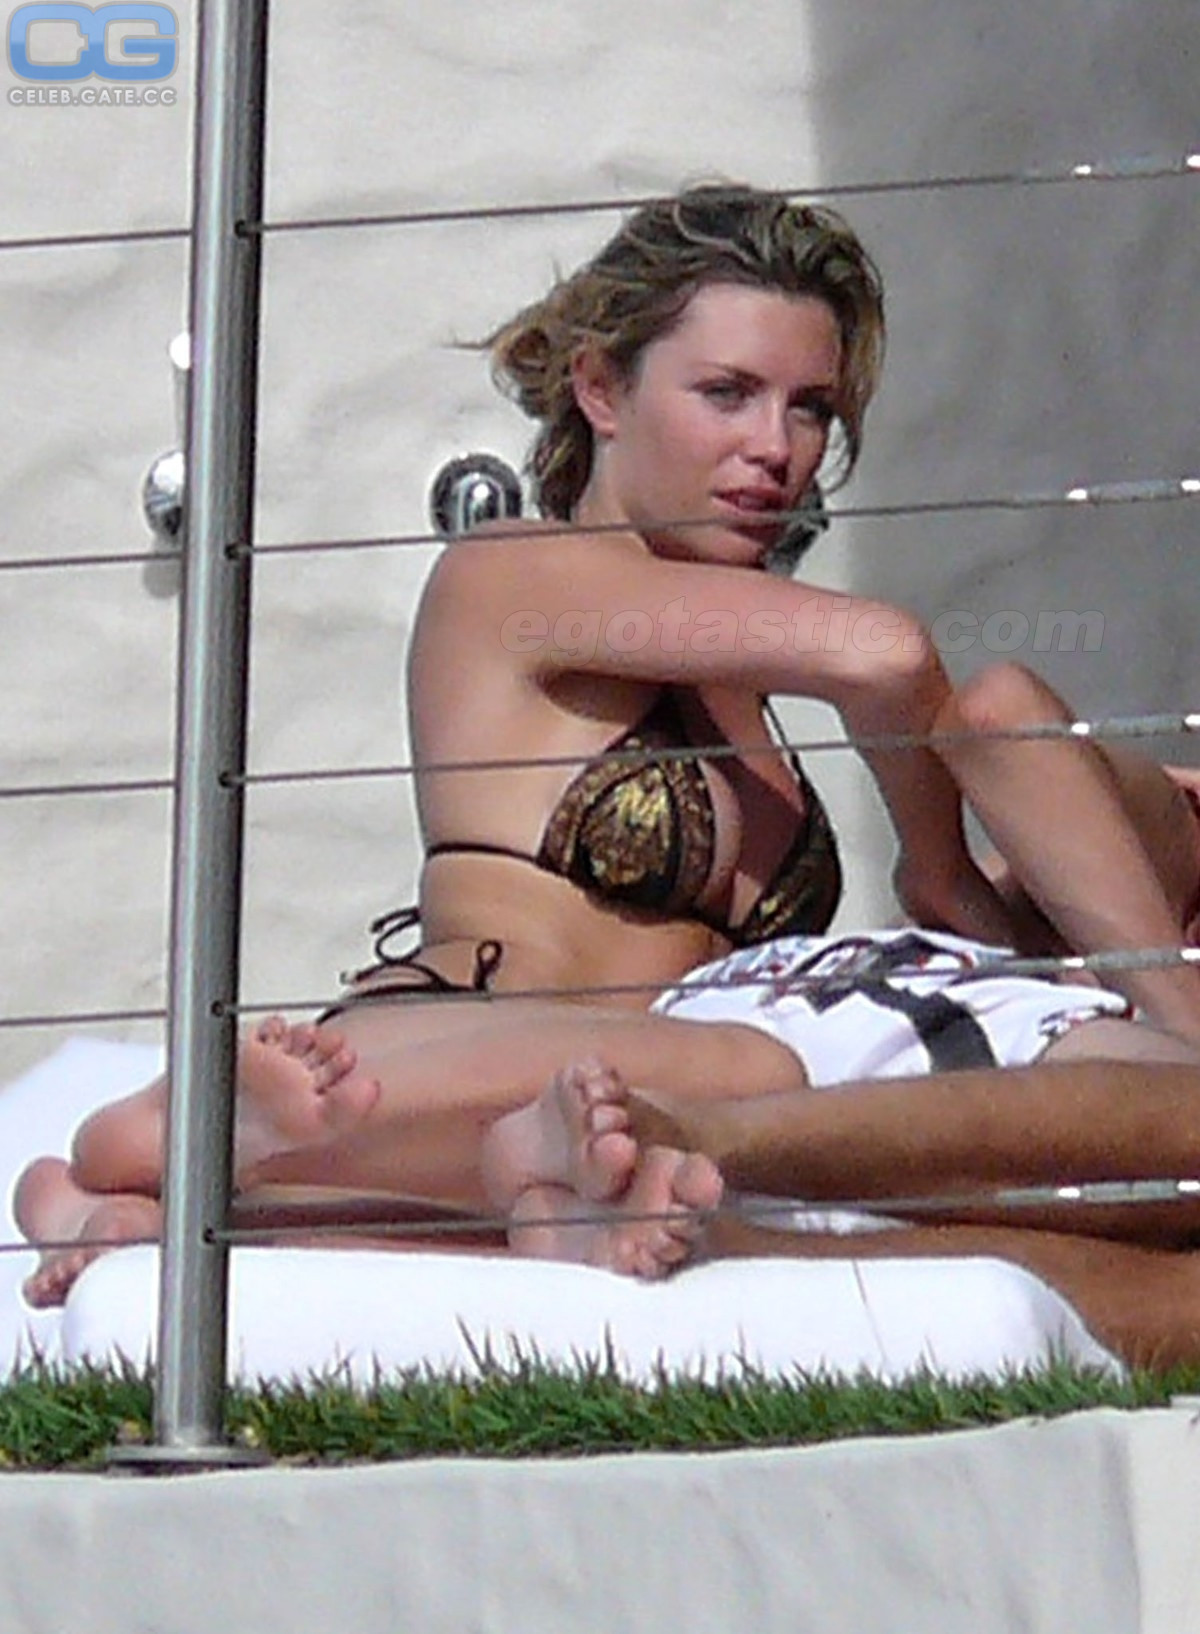 Nackt Abbey Clancy  Wikipedia:Recent additions/2020/May